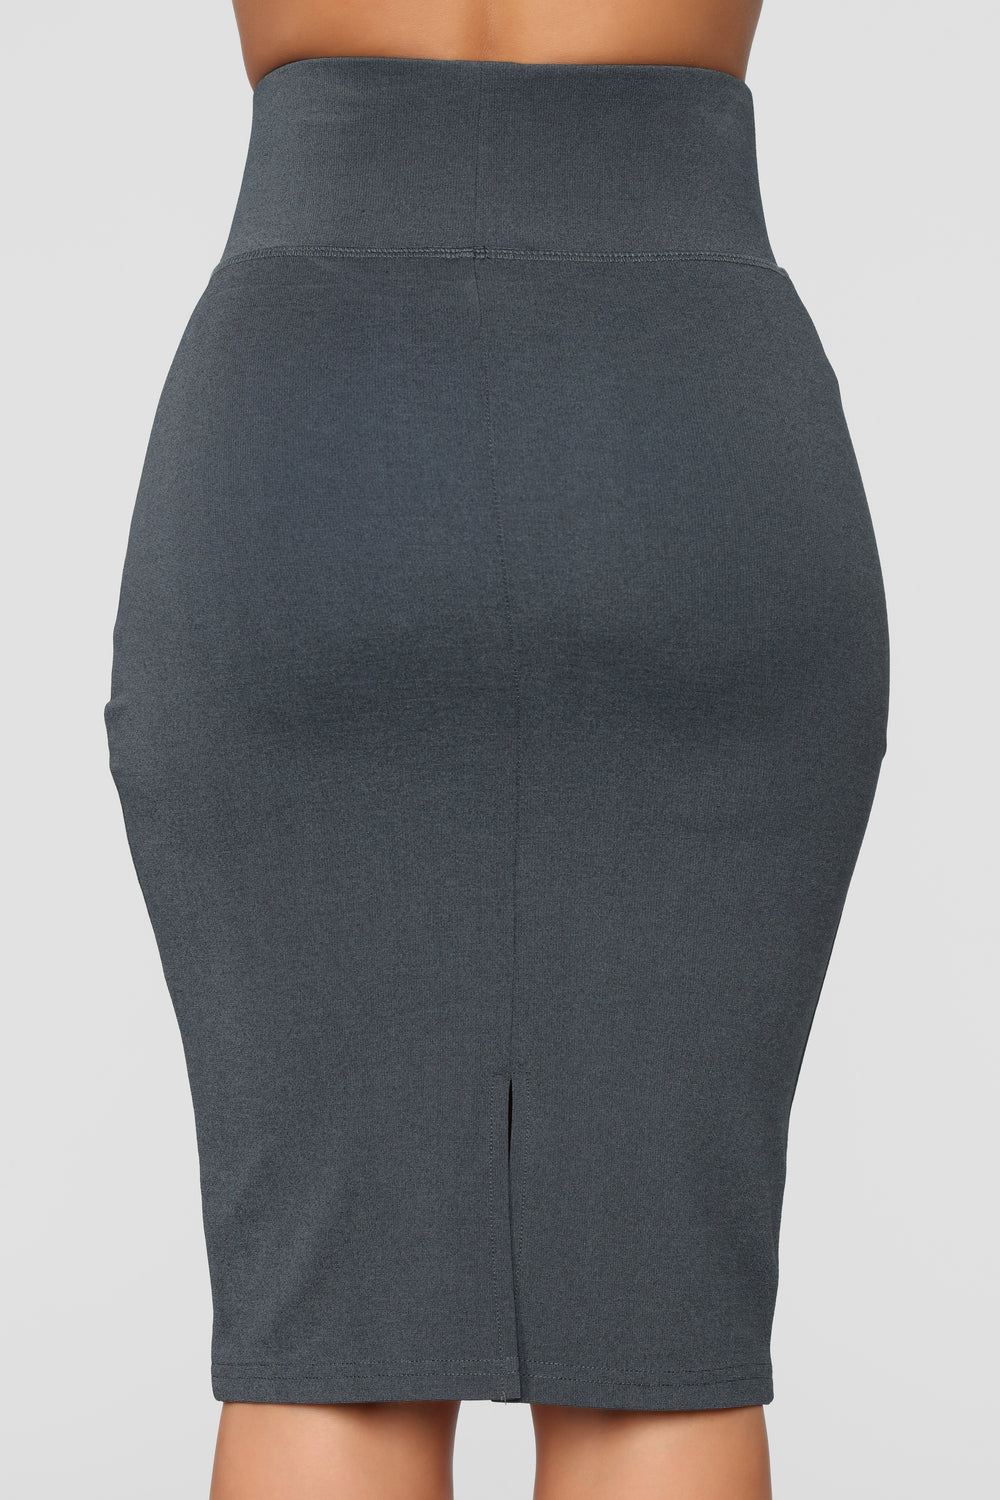 My Go To Midi Skirt - Charcoal